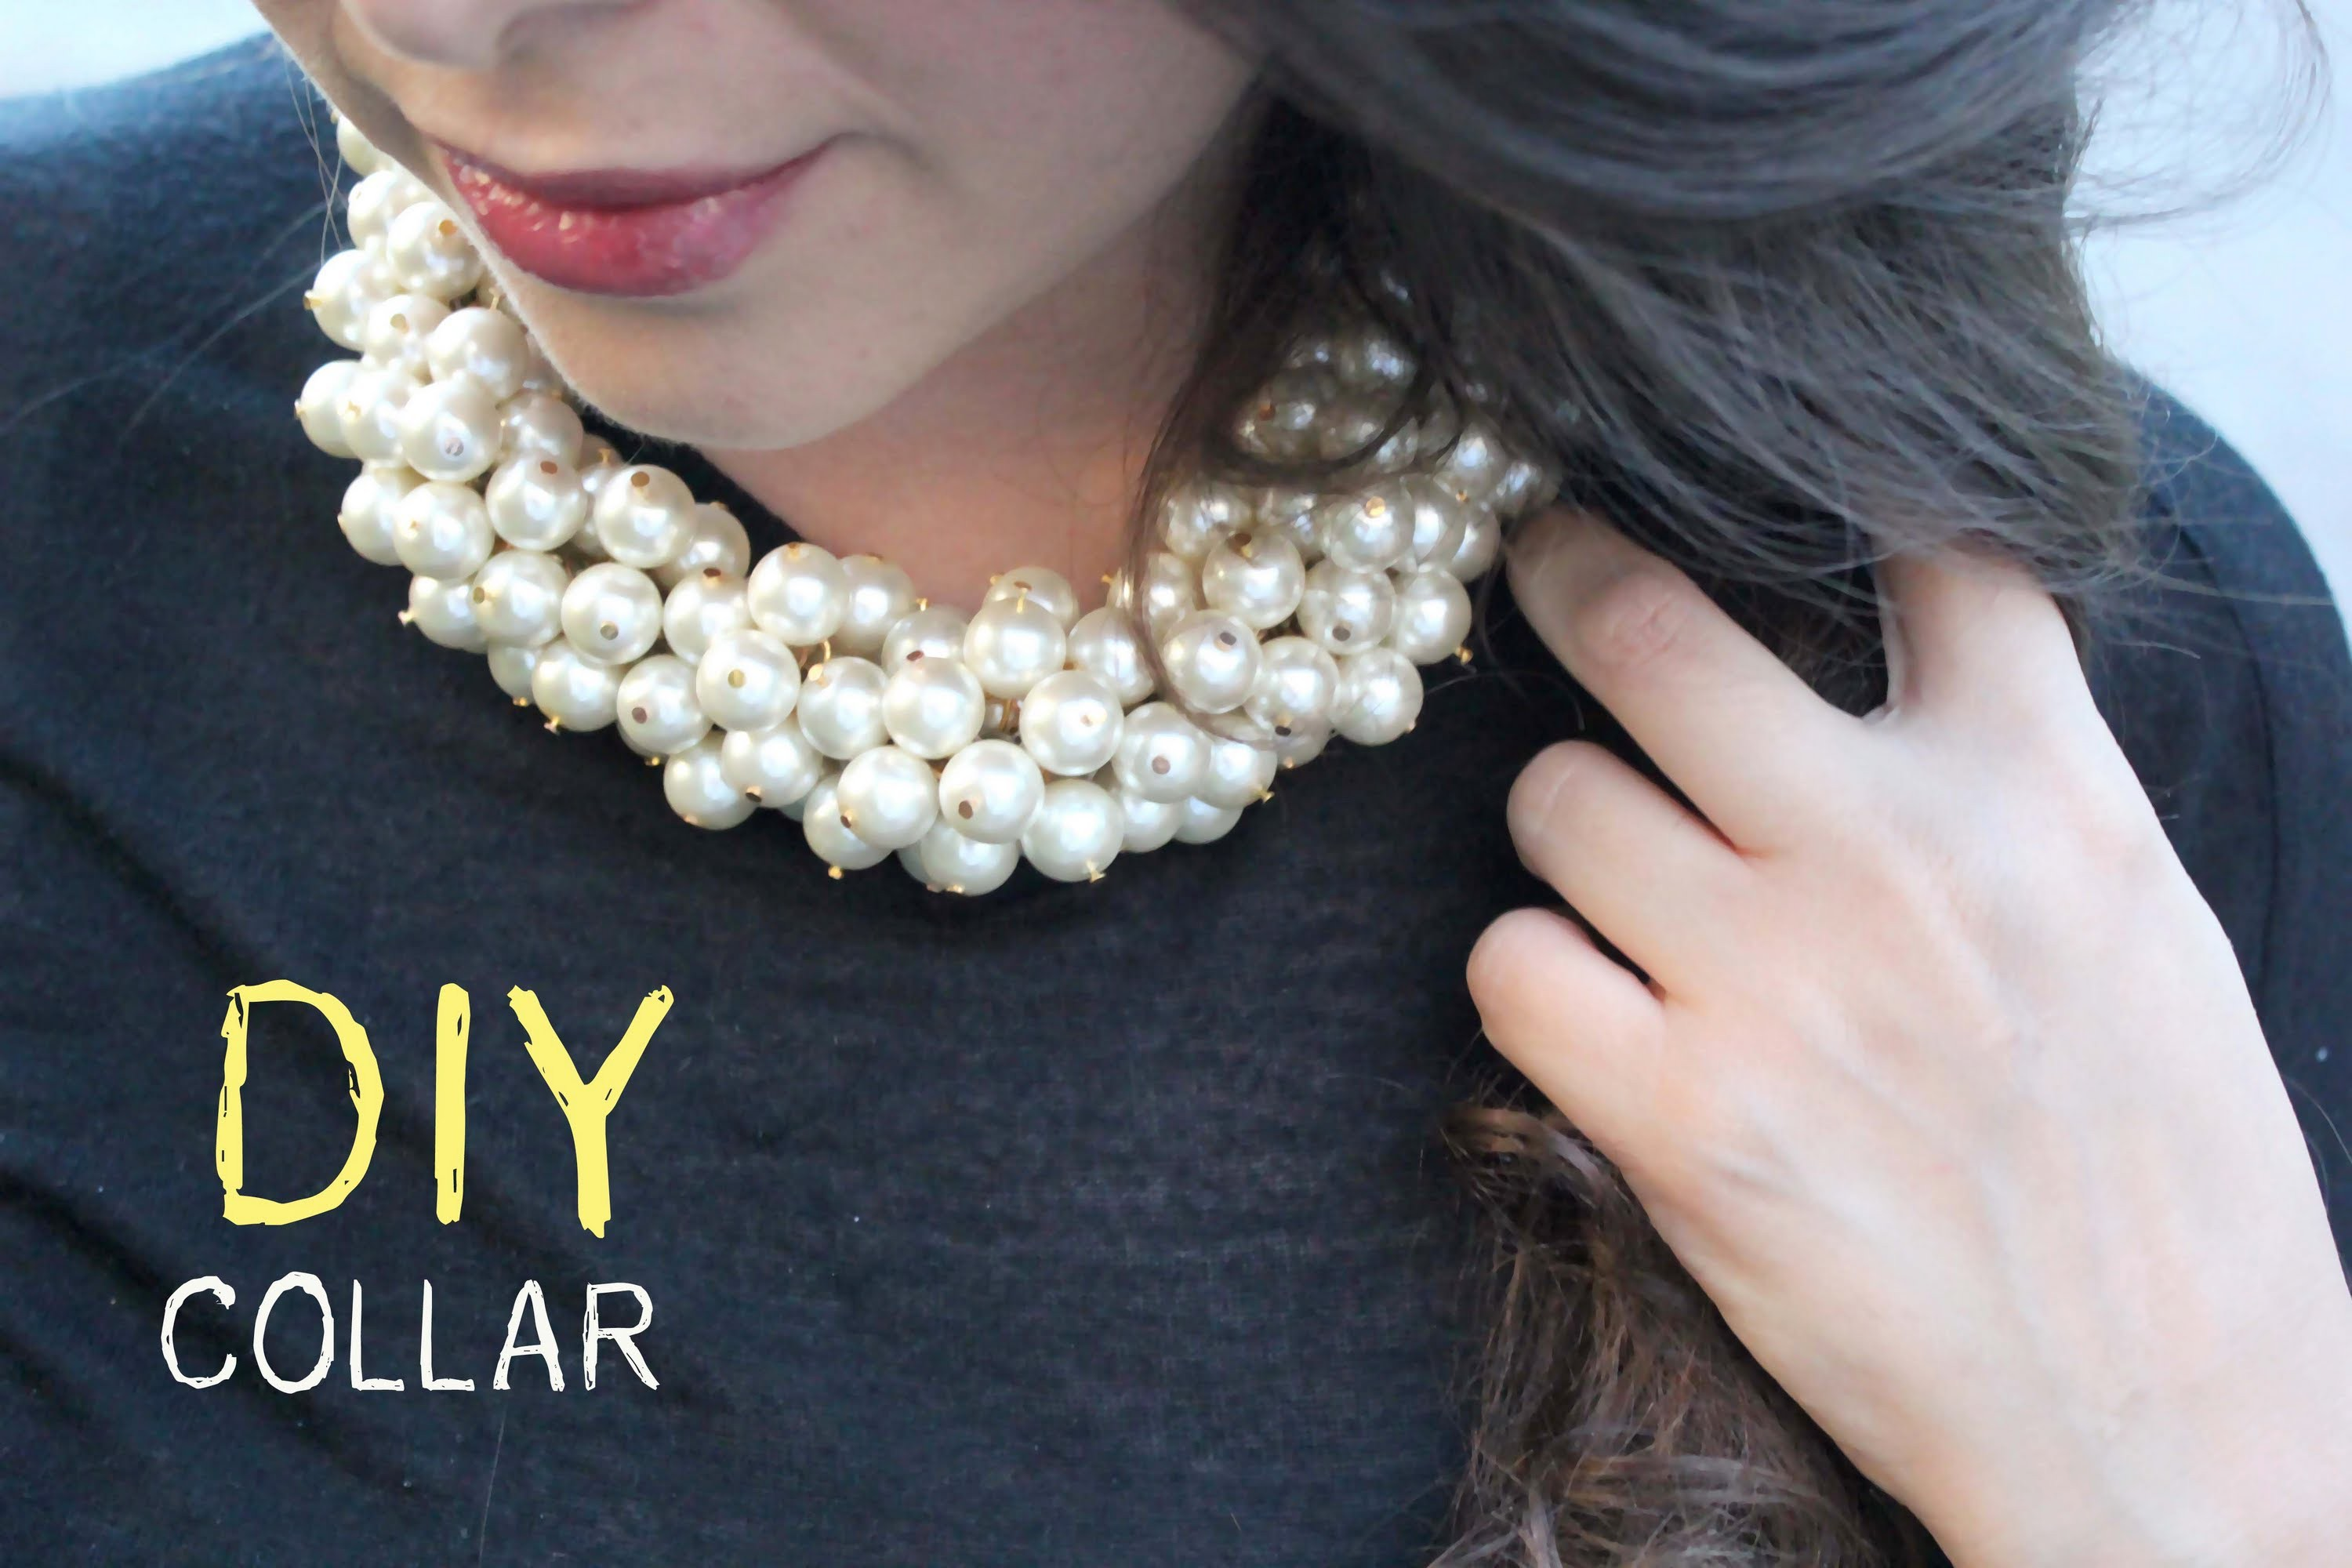 DIY Collar de perlas inspiración Chanel. DIY Pearl Necklace